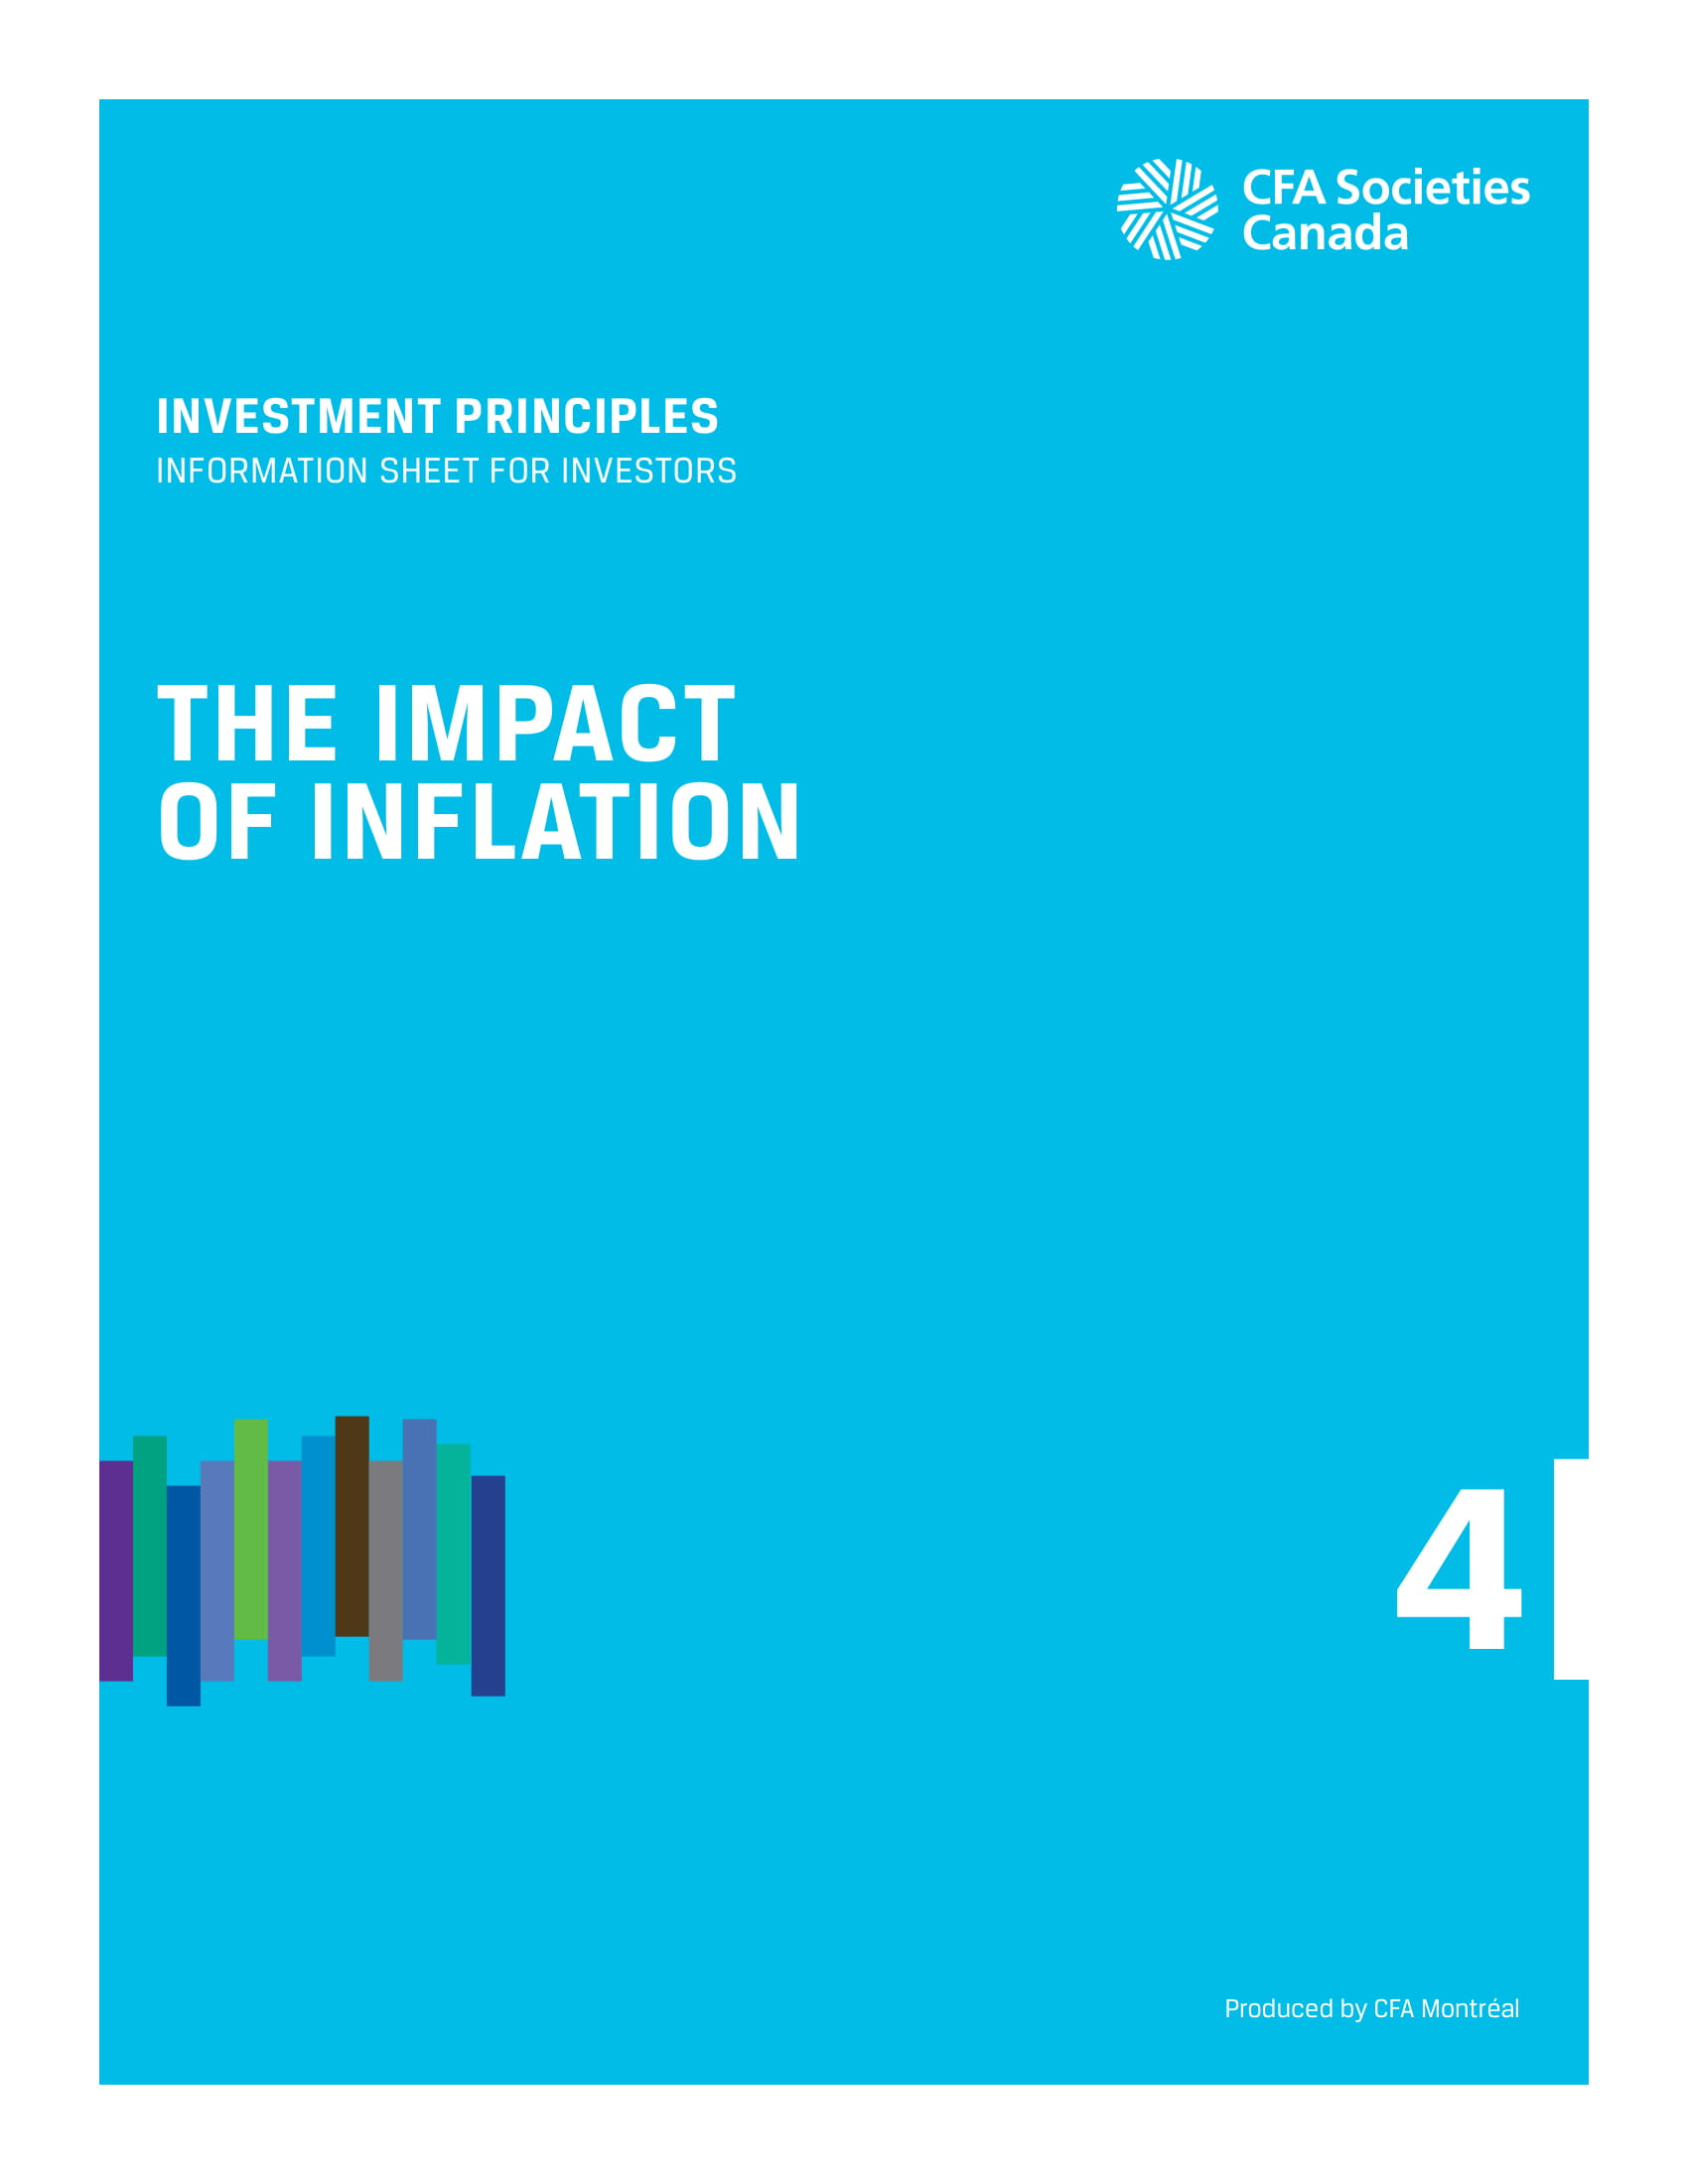 4. Investors - The Impact of Inflation_p1-1-1.jpg